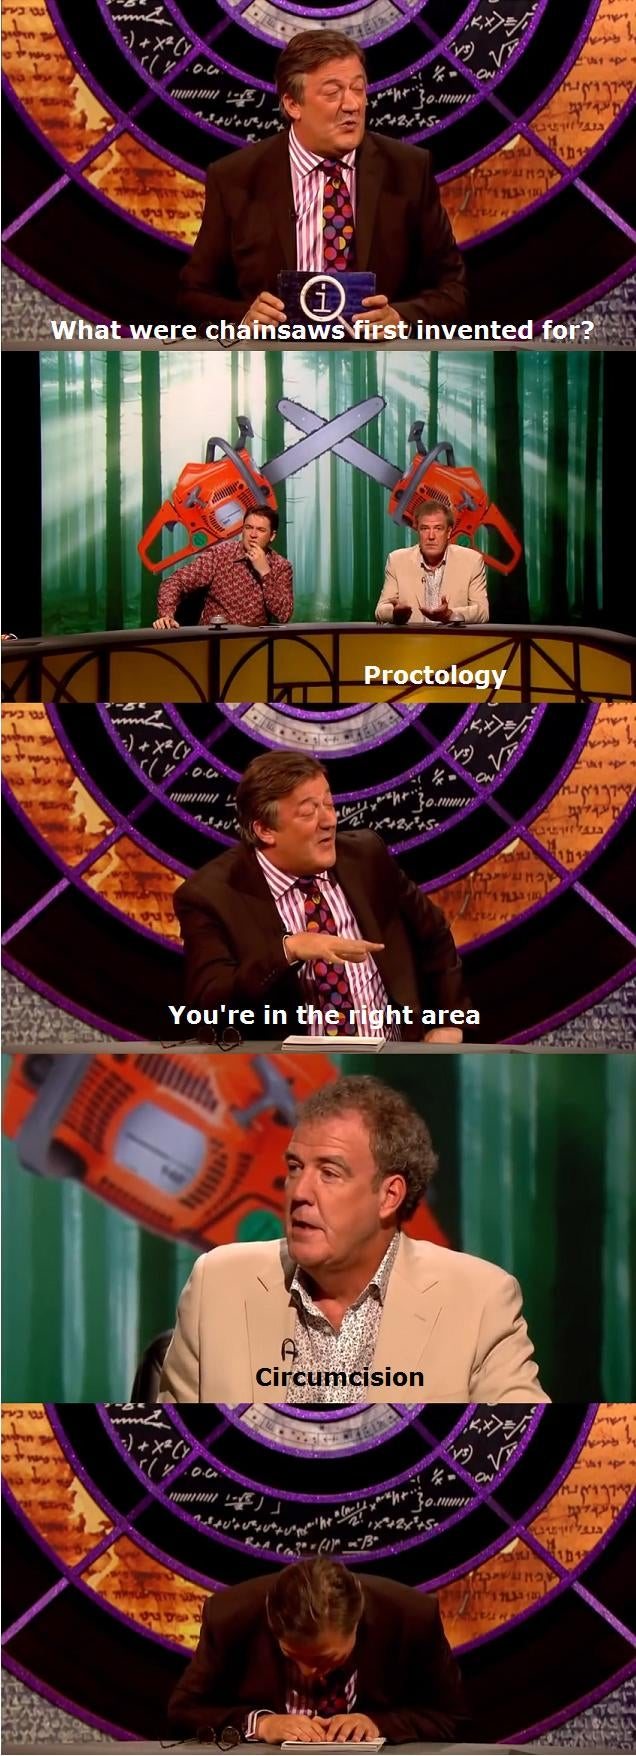 Jeremy Clarkson's thoughts on chainsaws